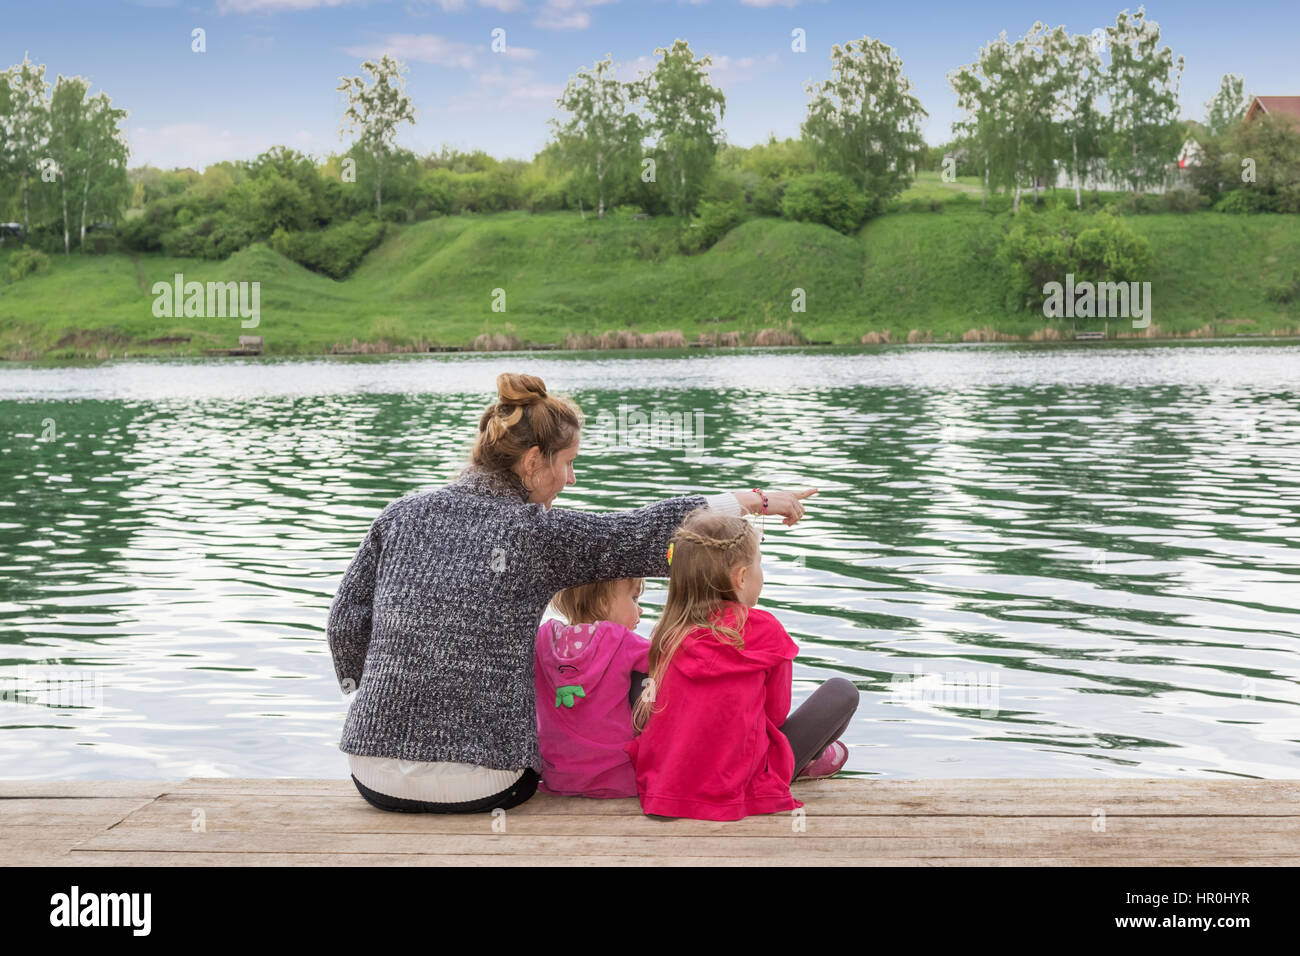 Mother of two children shows the index finger to the side sitting on a wooden plank at lake - Stock Photo